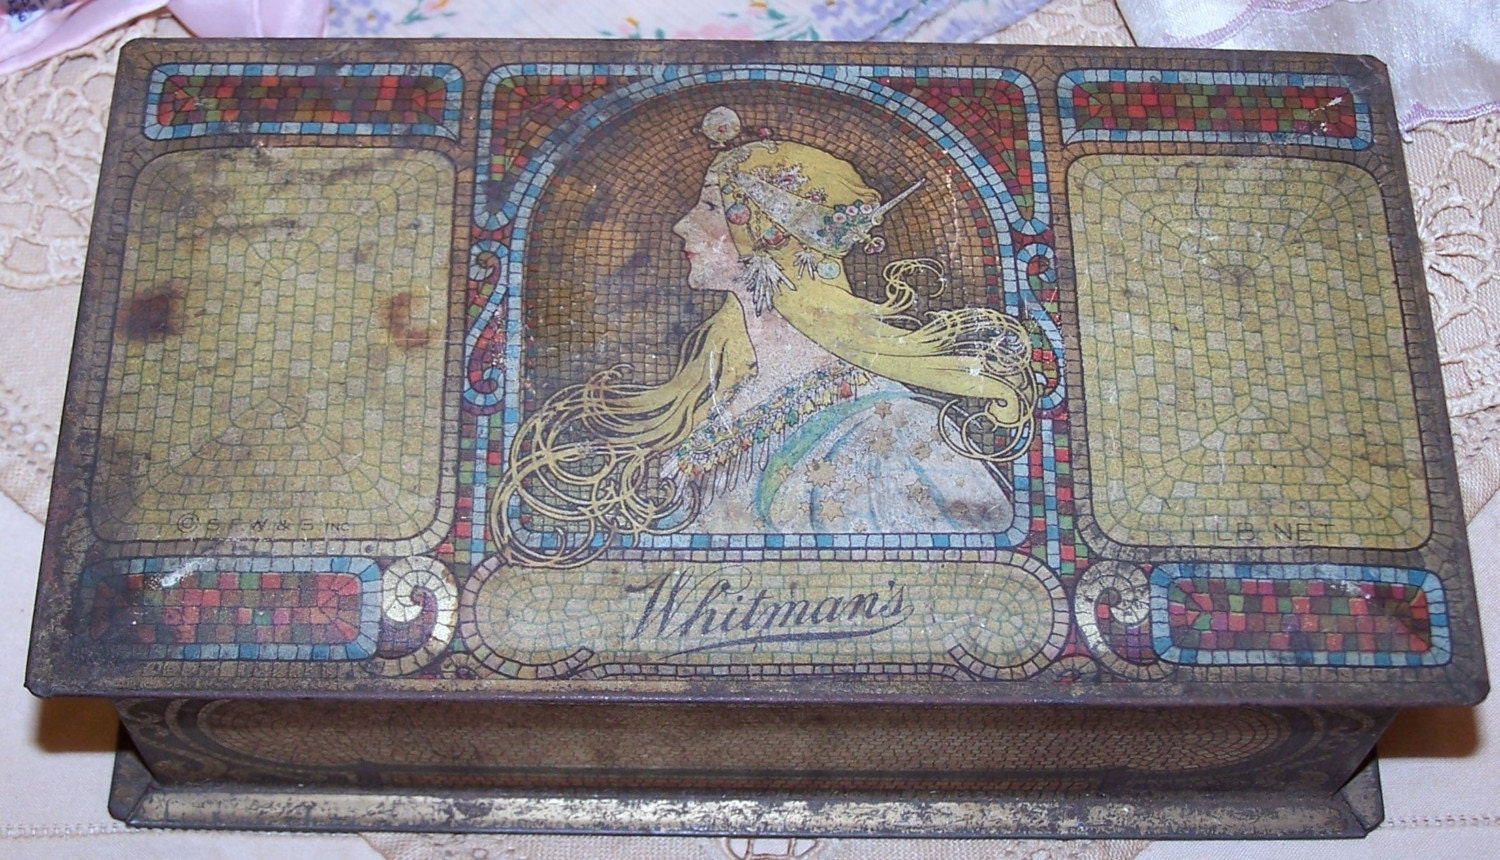 Antique Metal Whitmans Candy Box With Vintage Handkerchiefs